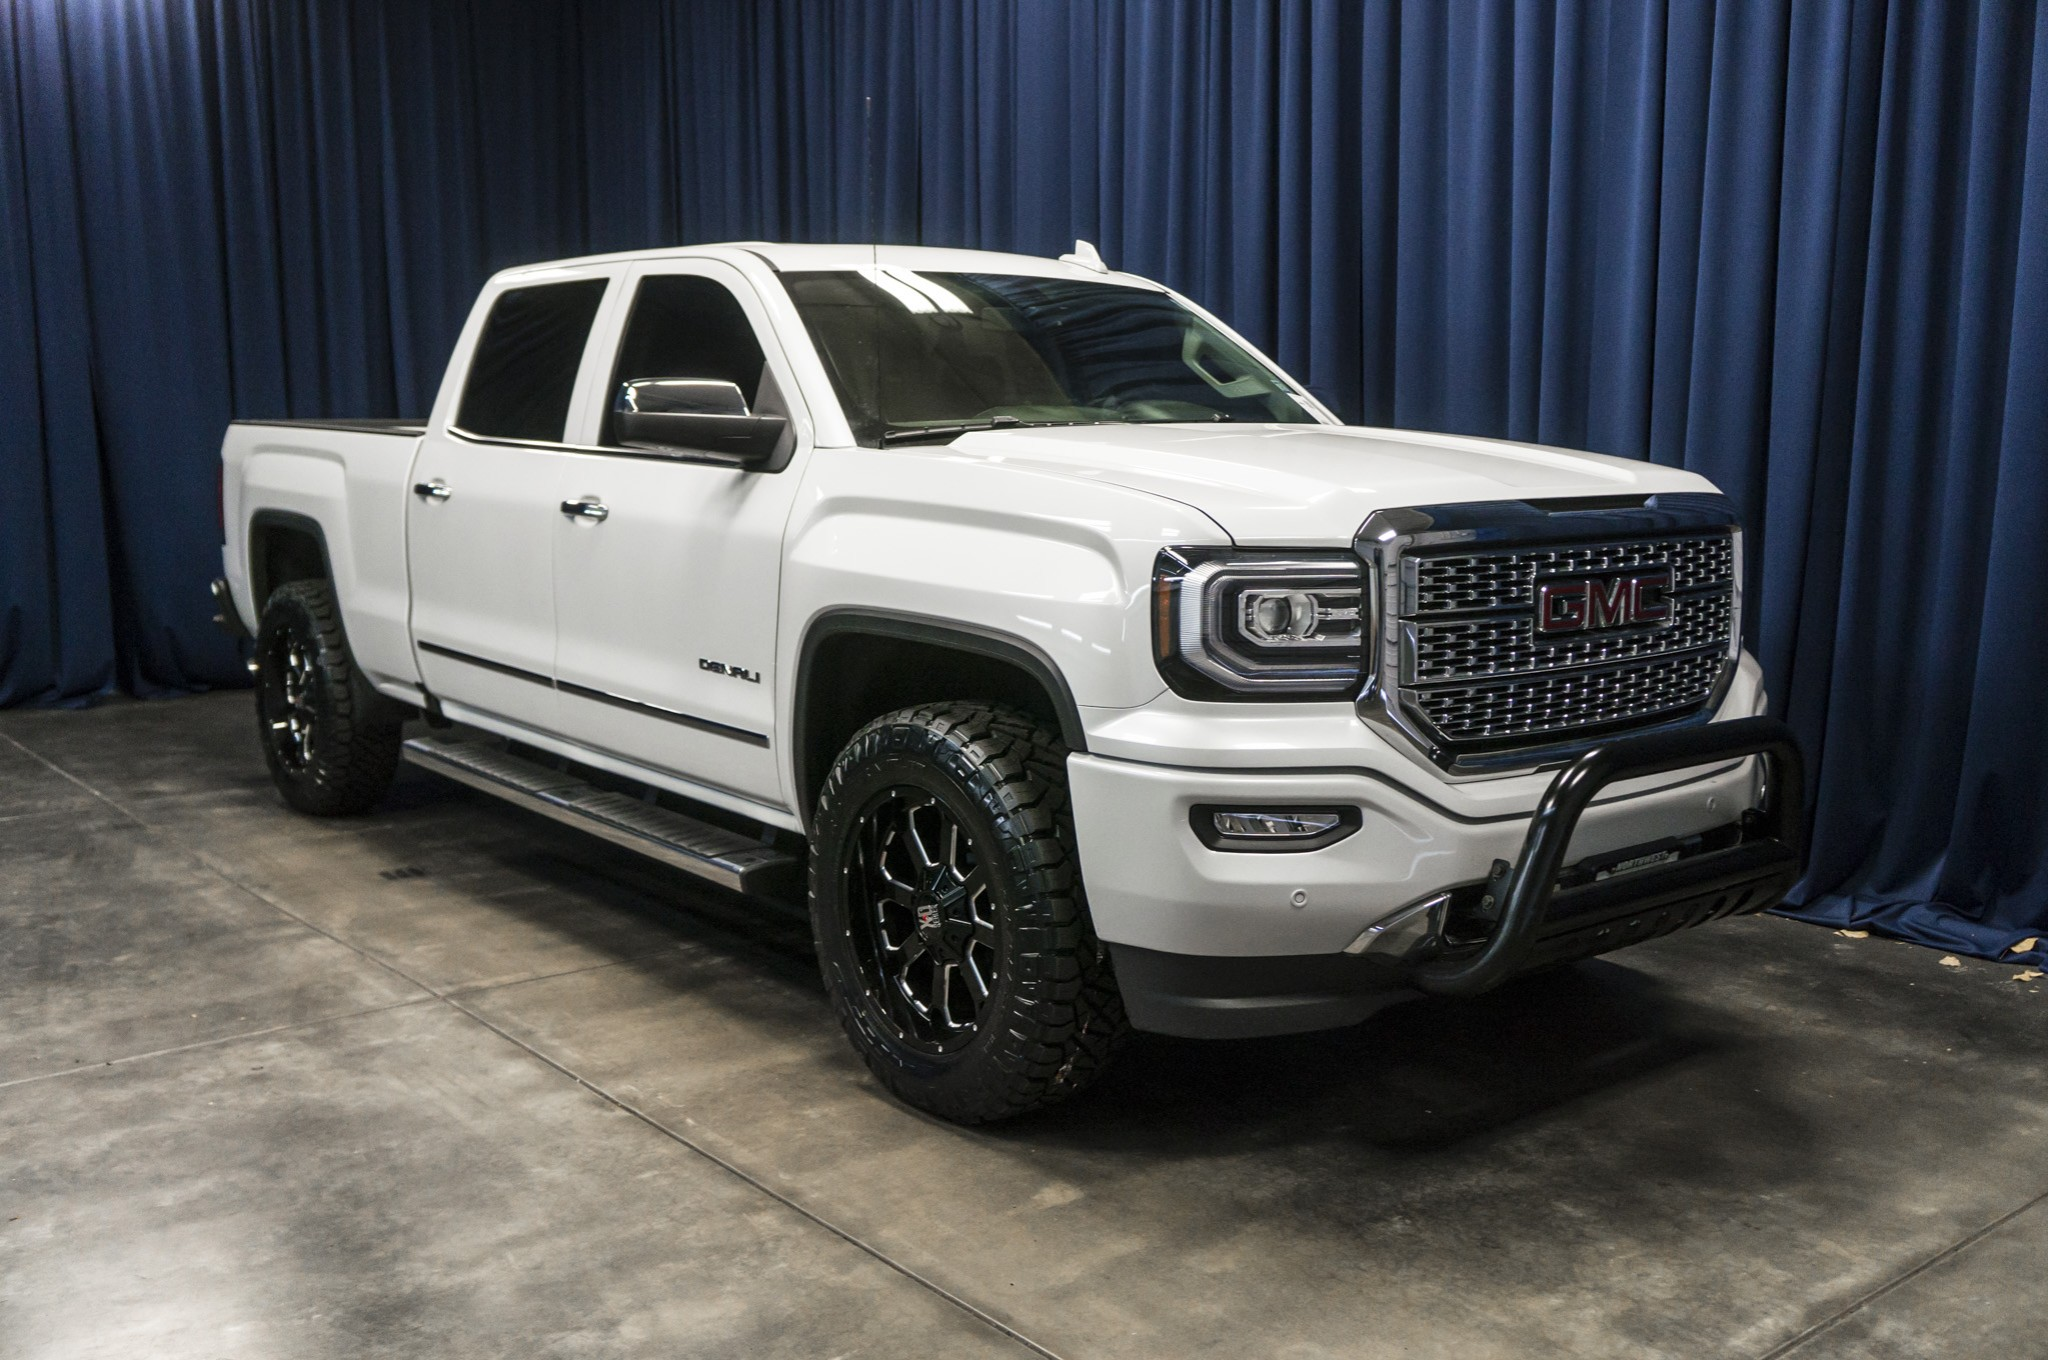 used lifted 2016 gmc sierra 1500 denali 4x4 truck for sale 36884. Black Bedroom Furniture Sets. Home Design Ideas